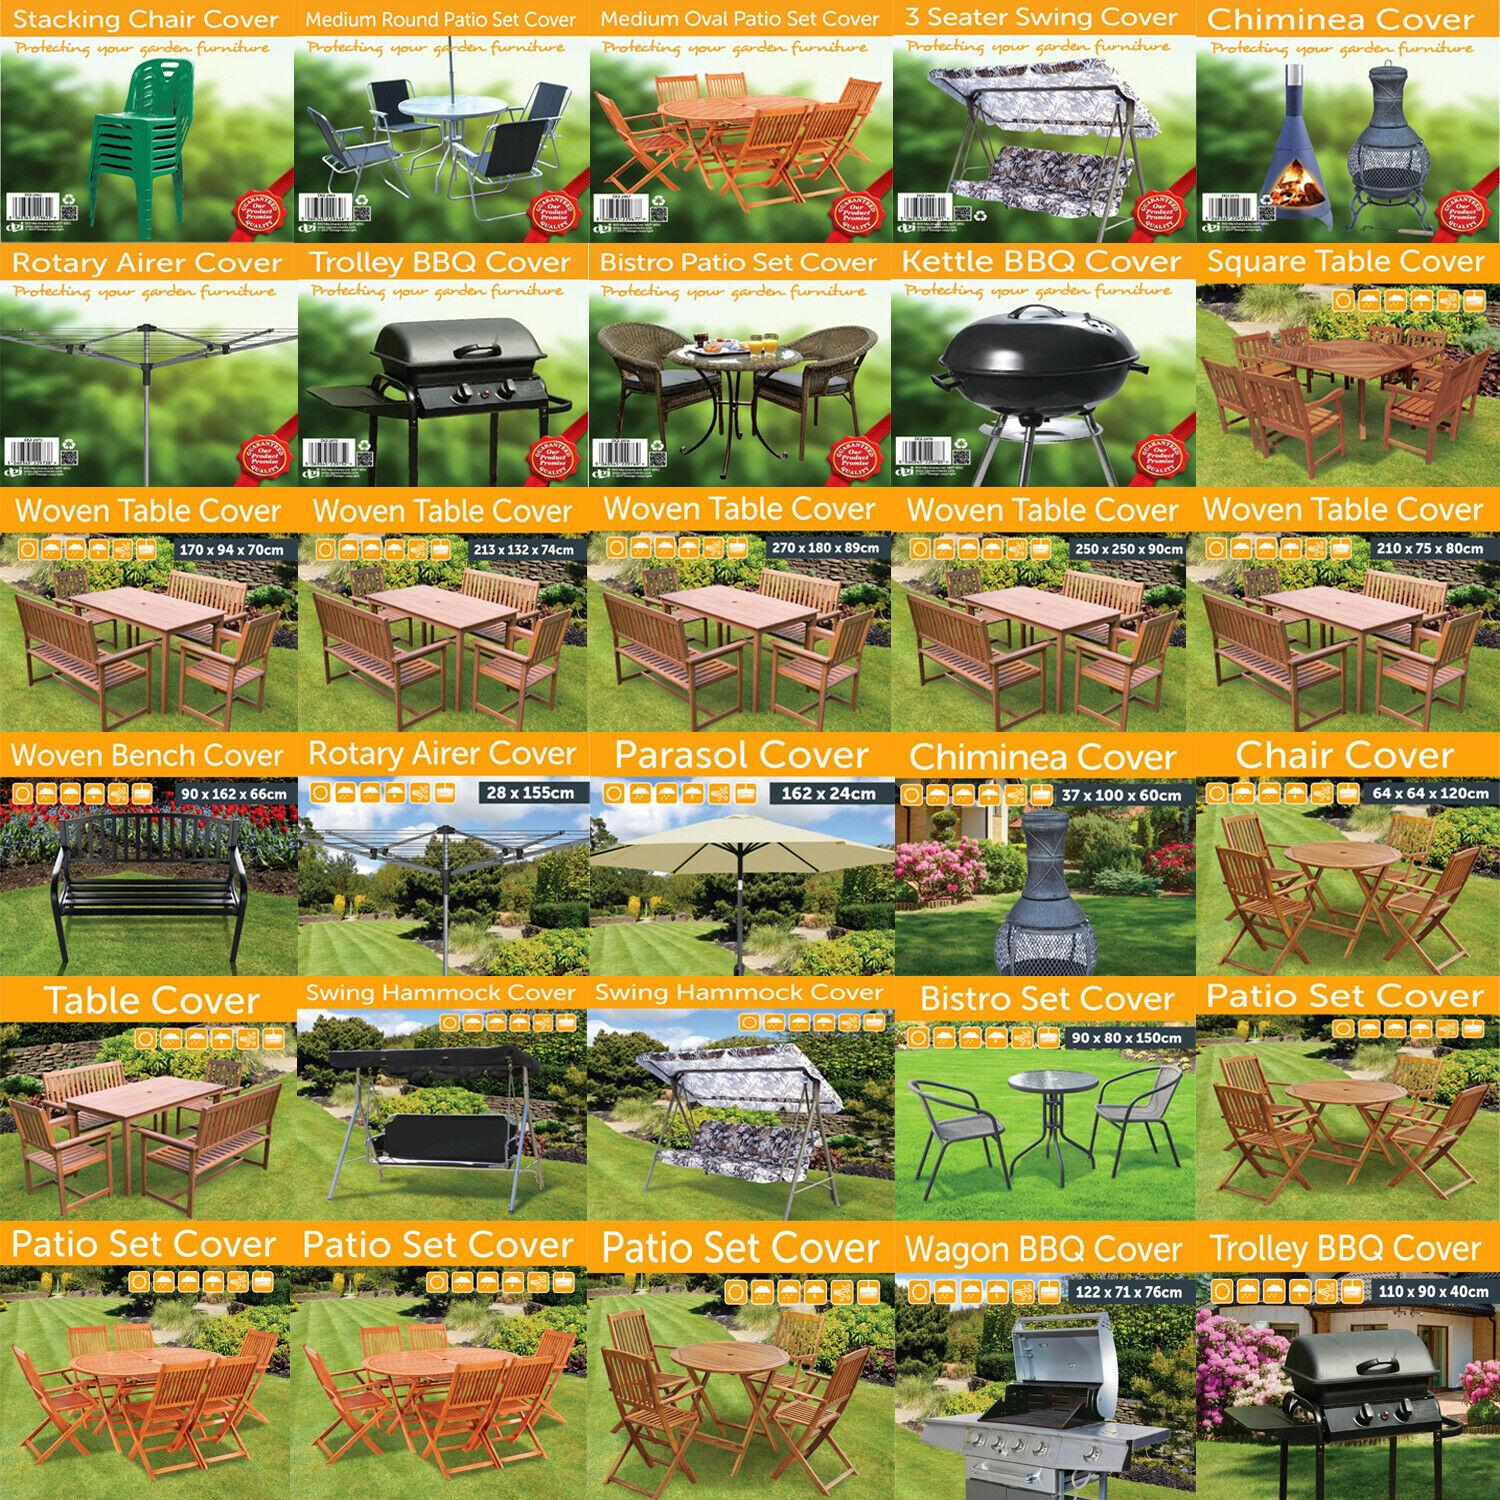 Details about OUTDOOR GARDEN FURNITURE COVERS BBQ TABLE CHAIRS BENCH  HAMMOCK PARASOL COVERS